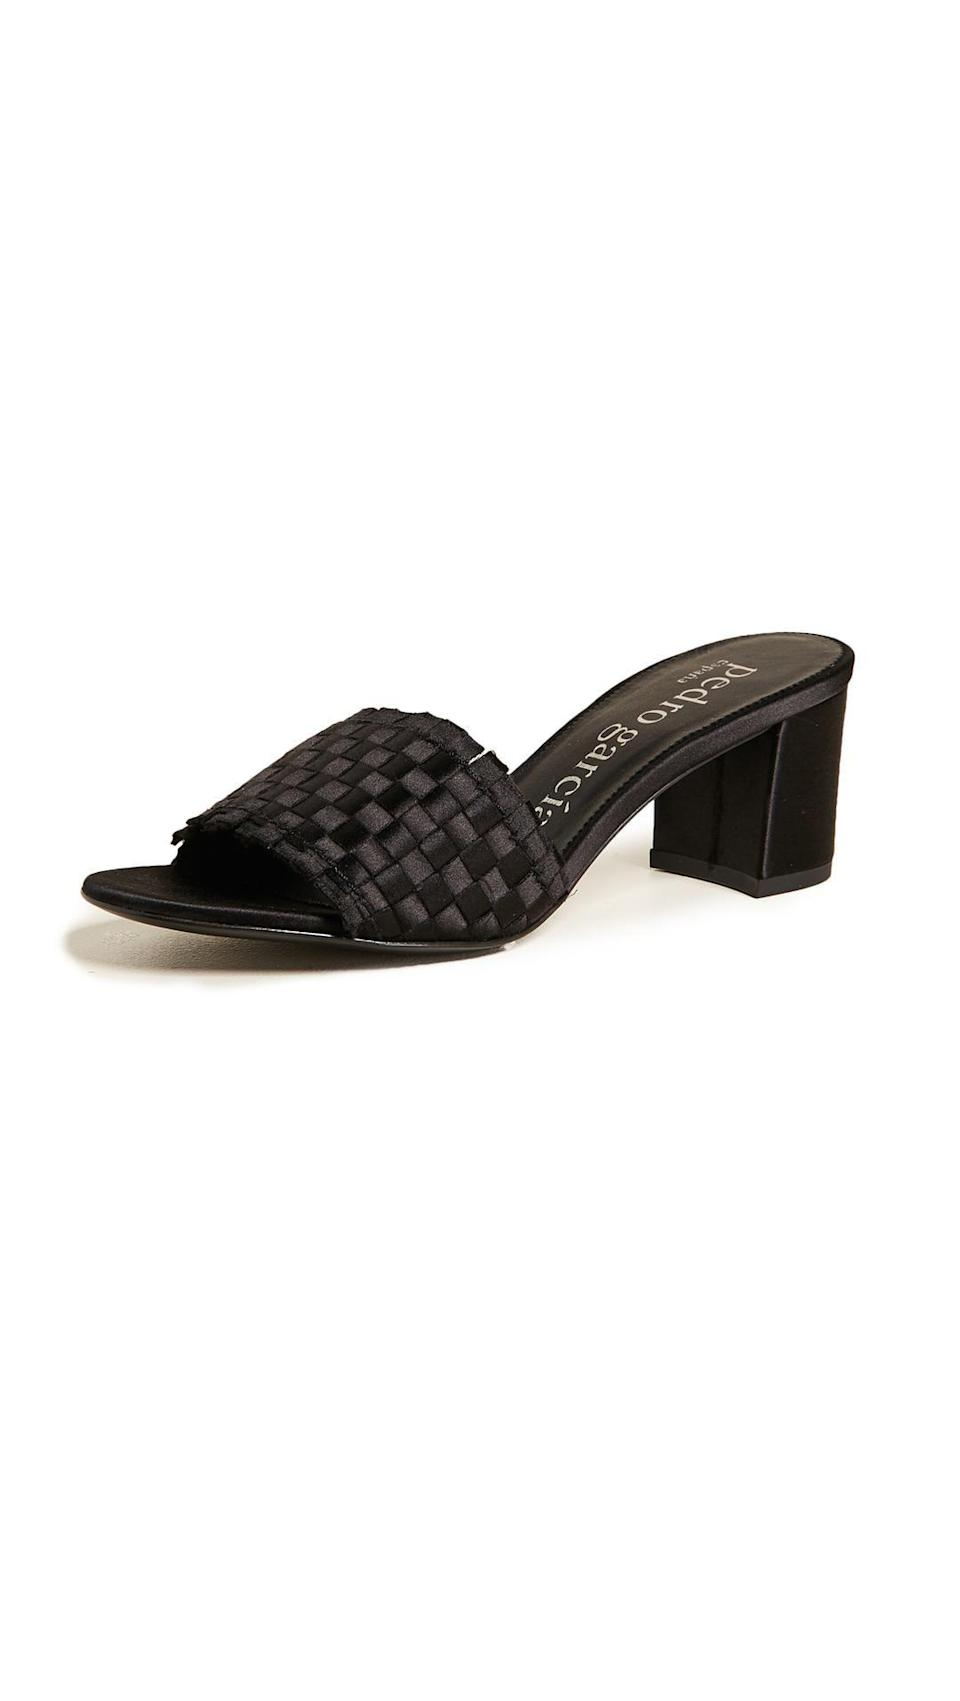 Available in sizes 35.5 to 36.5.